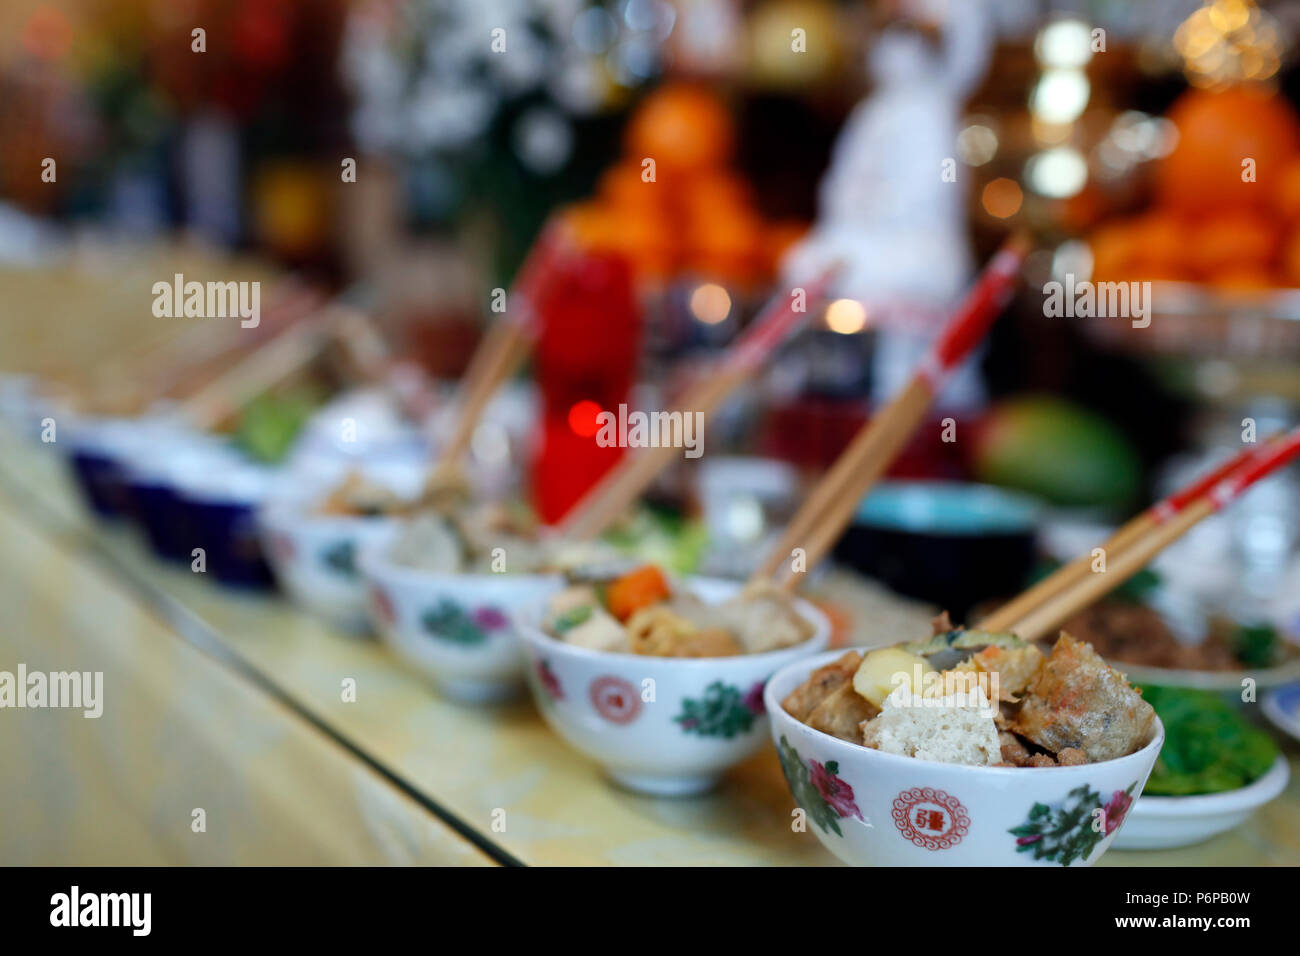 Chua Tu An Buddhist temple.  Ancestor altar. Vegetarian offerings. Saint-Pierre en Faucigny. France. - Stock Image